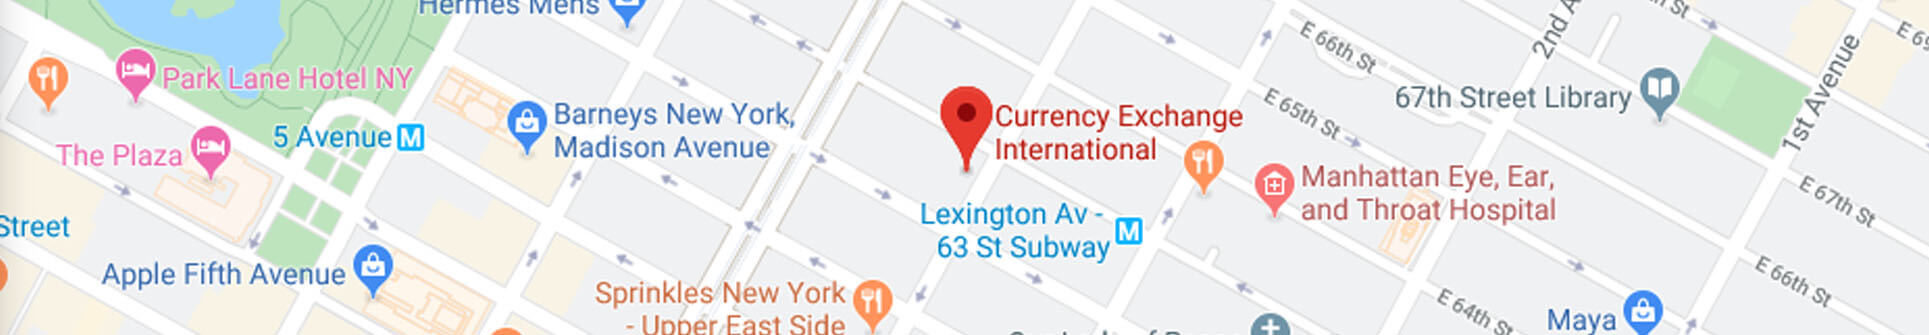 cxi upper east side map.jpg